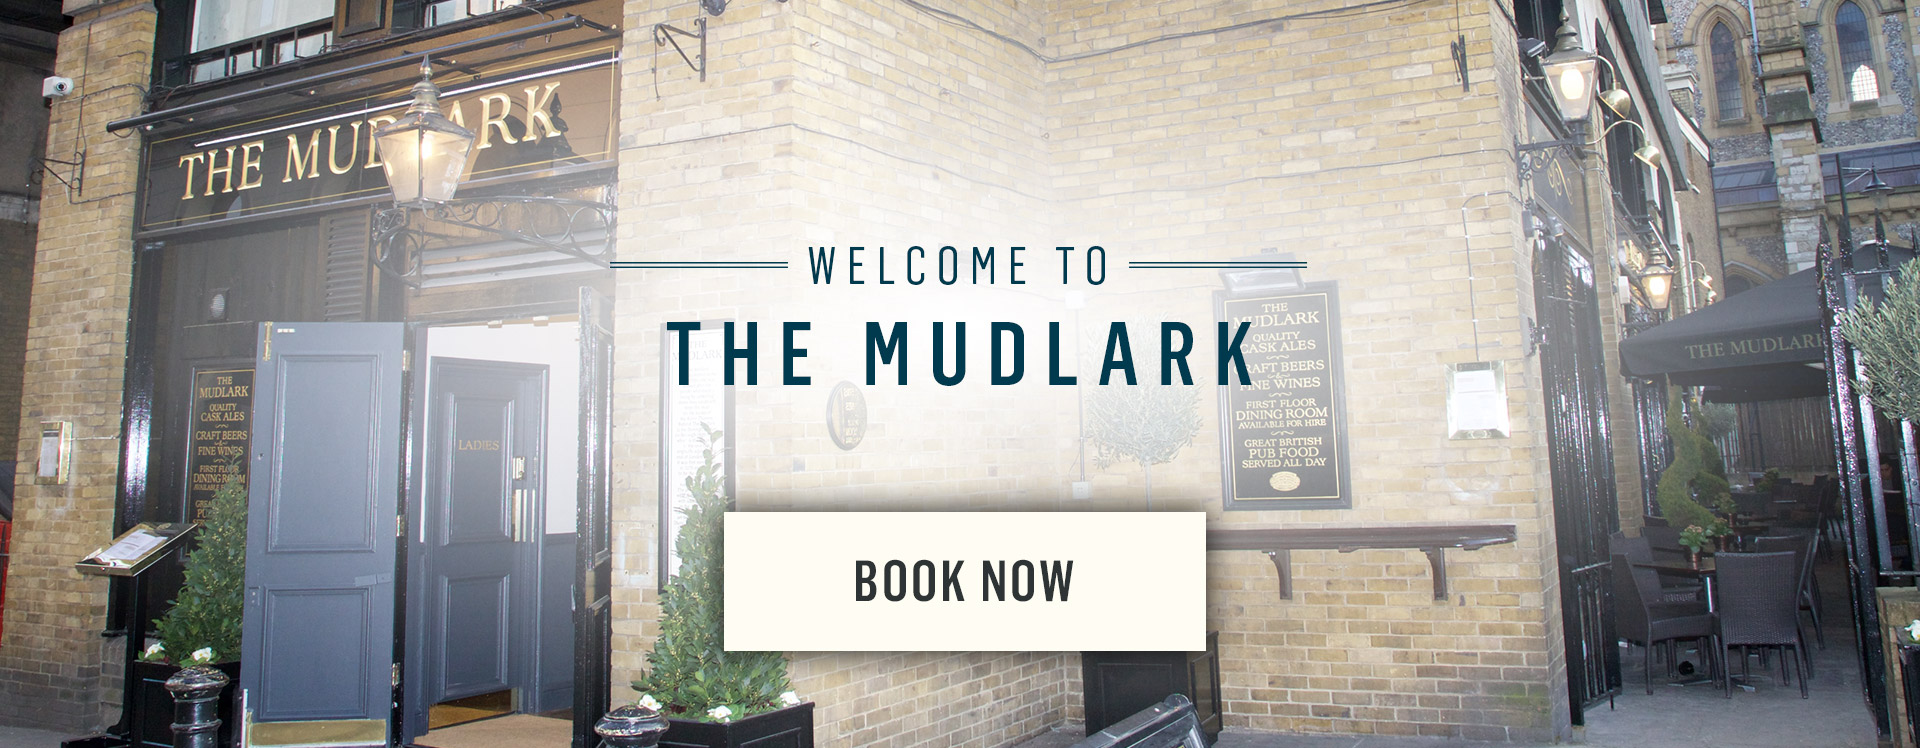 Welcome to The Mudlark - Book Now